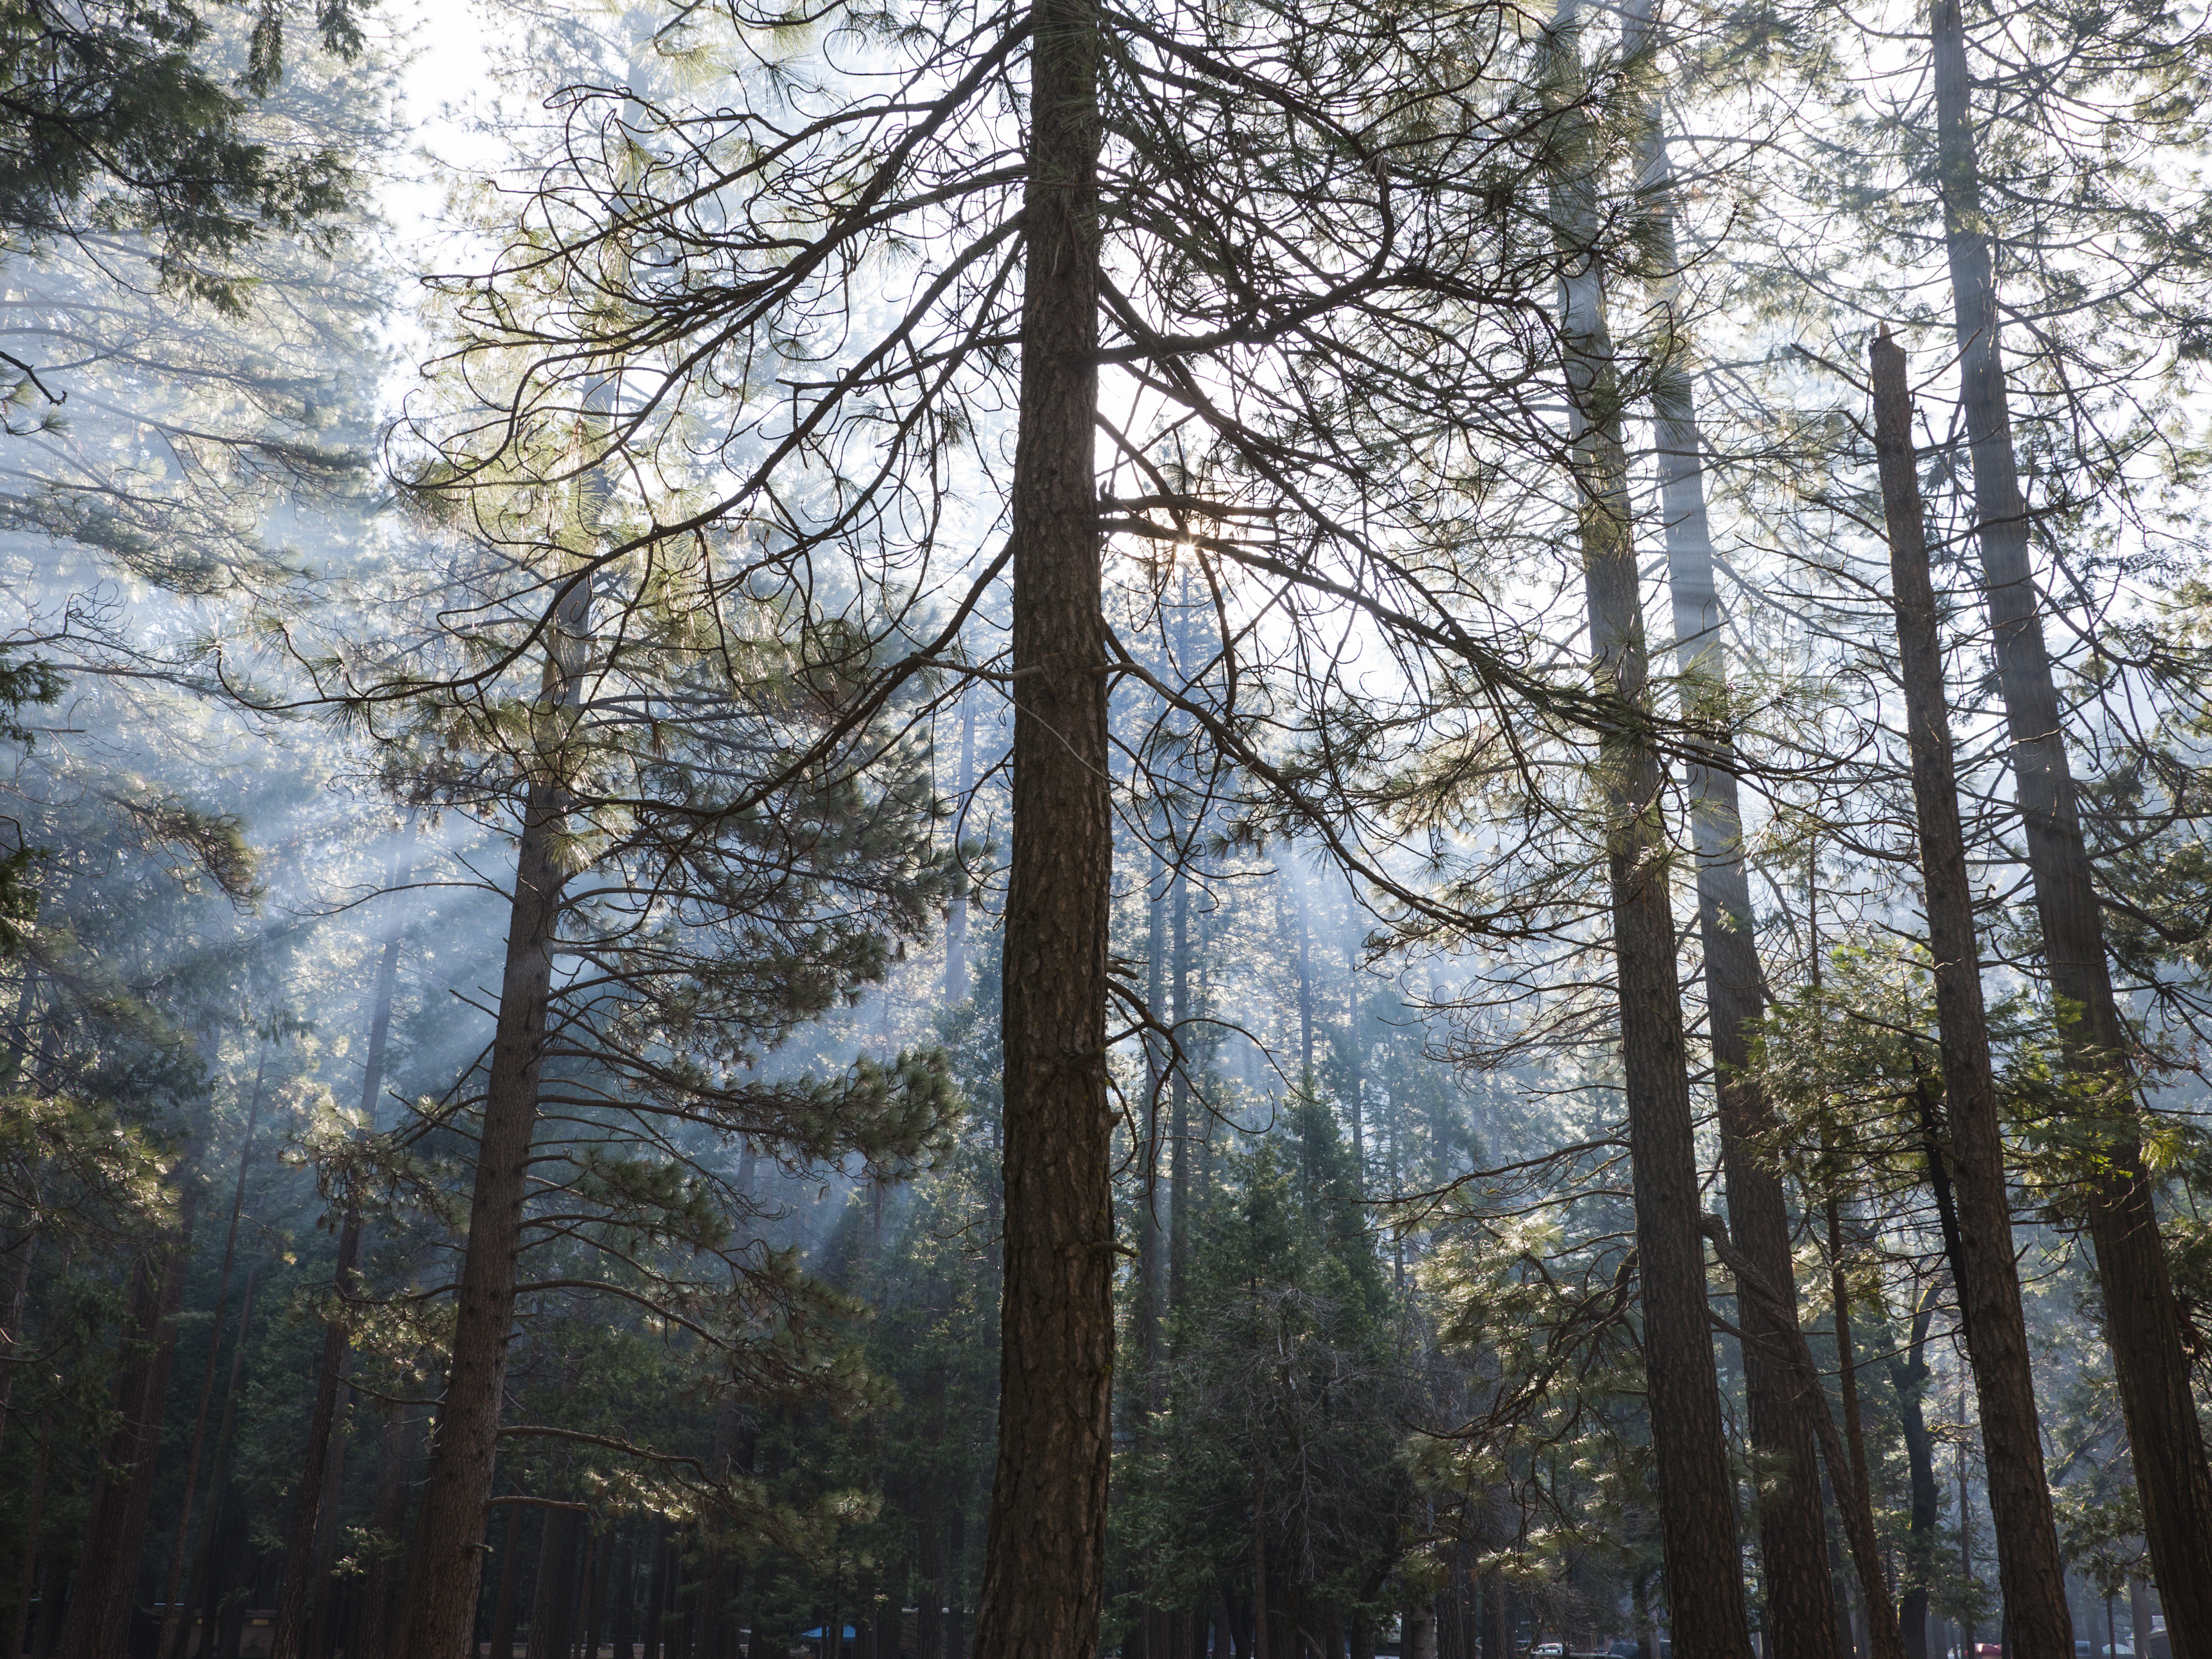 trees with sunlight streaming through